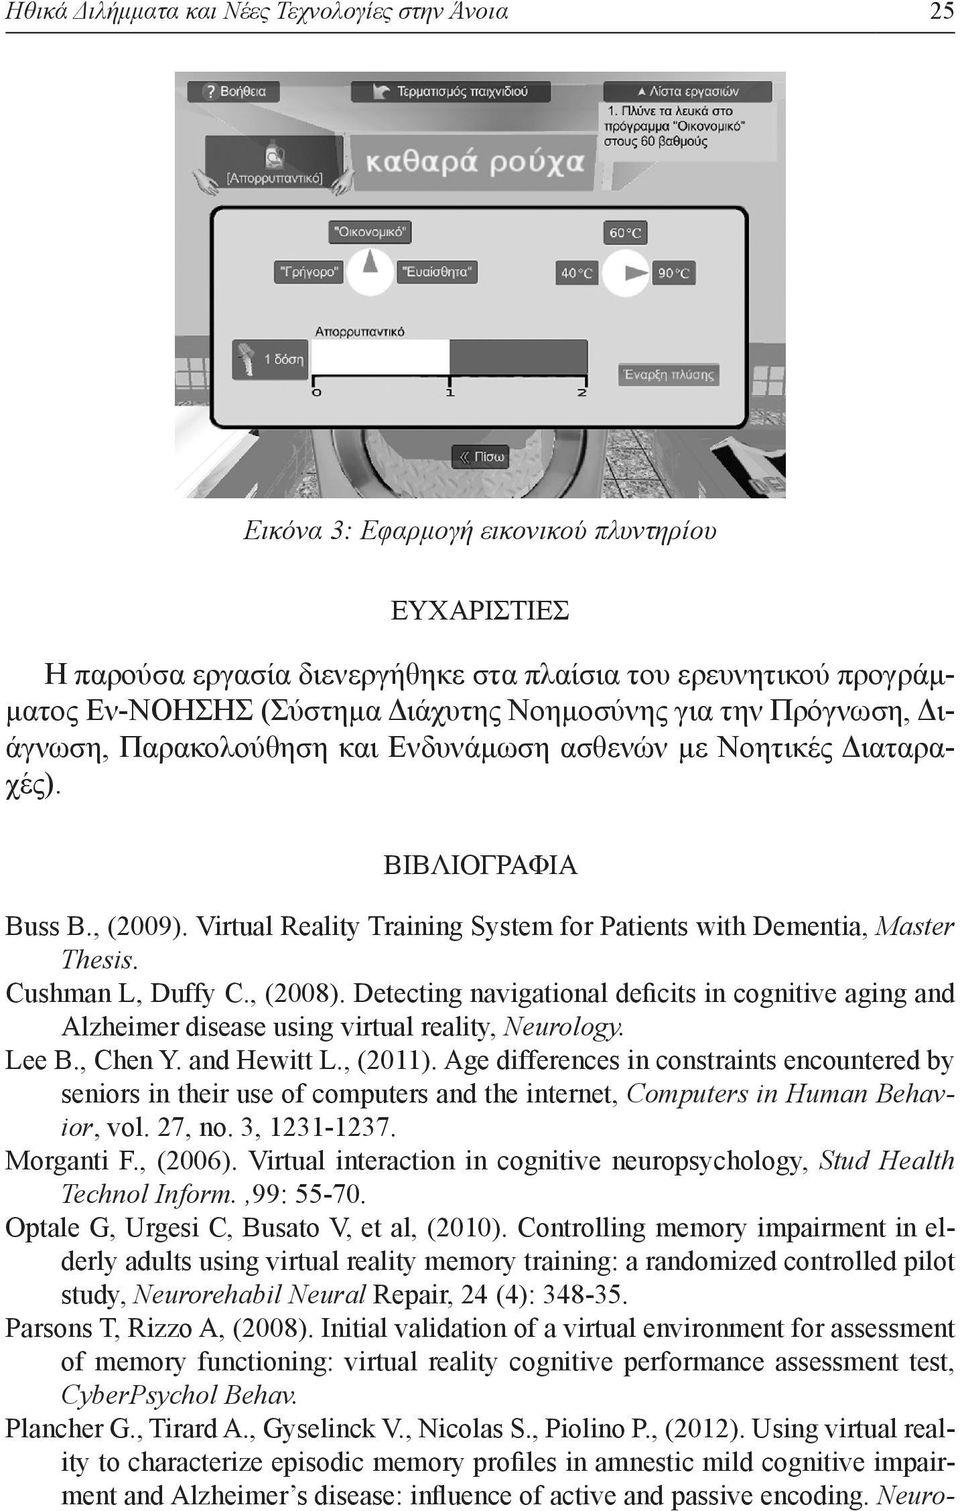 Virtual Reality Training System for Patients with Dementia, Master Thesis. Cushman L, Duffy C., (2008).